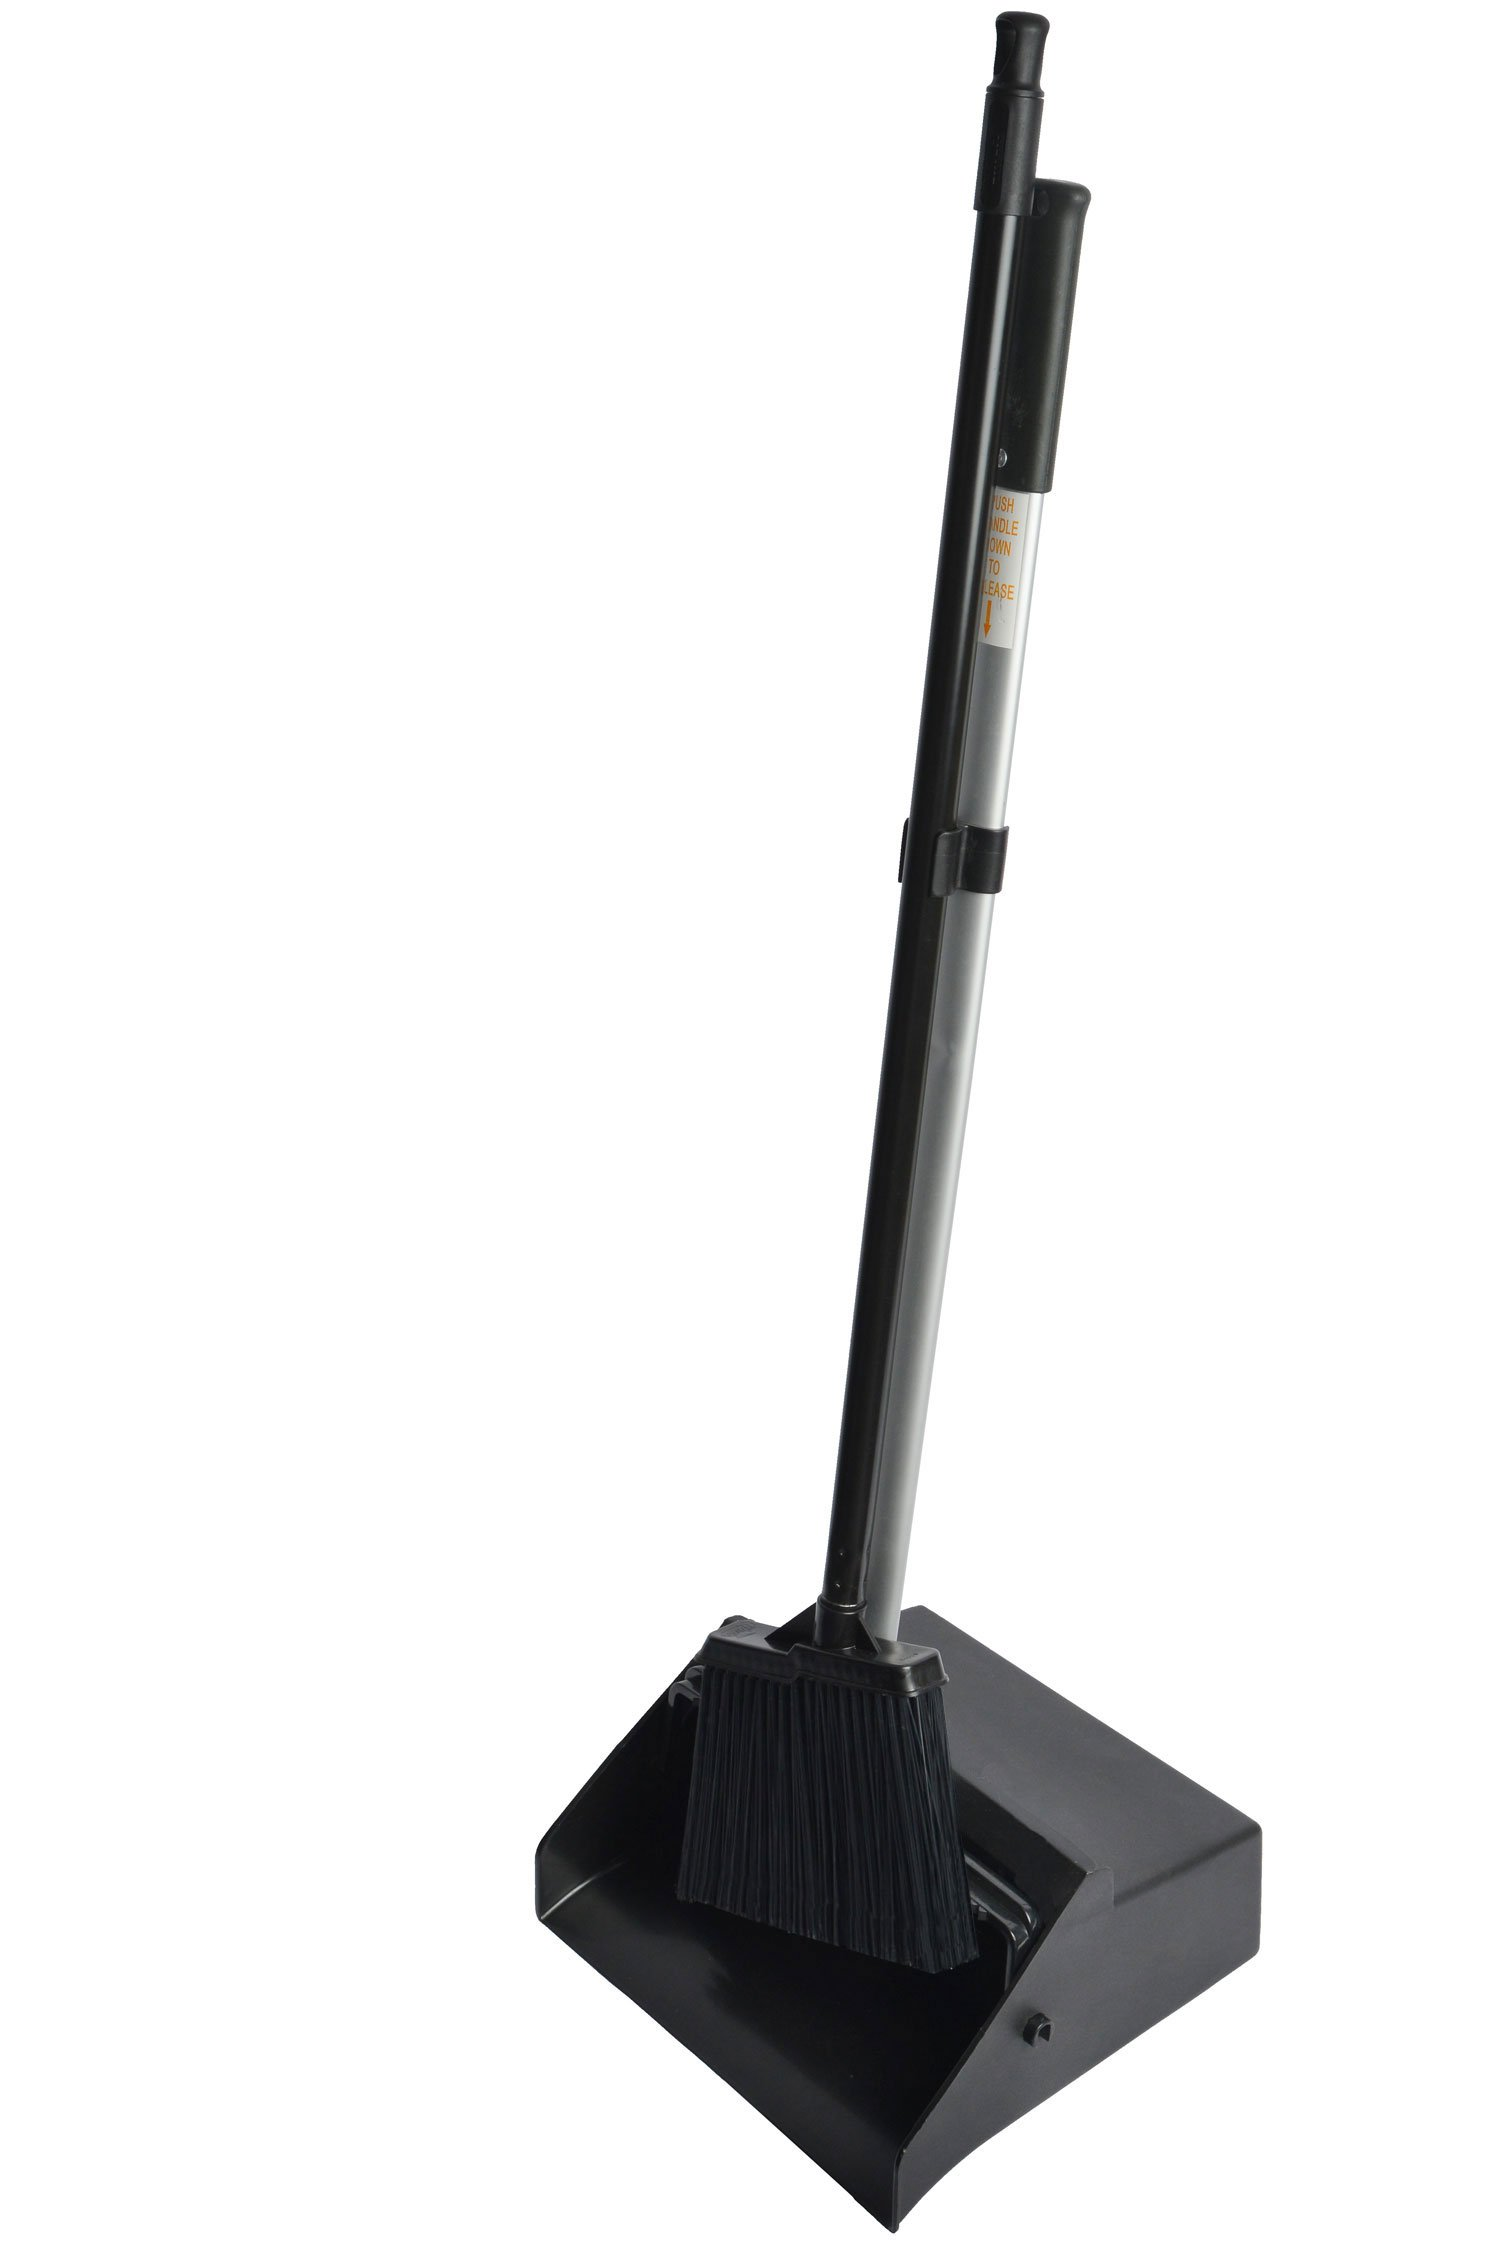 "Janico 10854051 Lobby Dustpan & Lobby Angle Broom Combo Set, 37"" Height, Black"